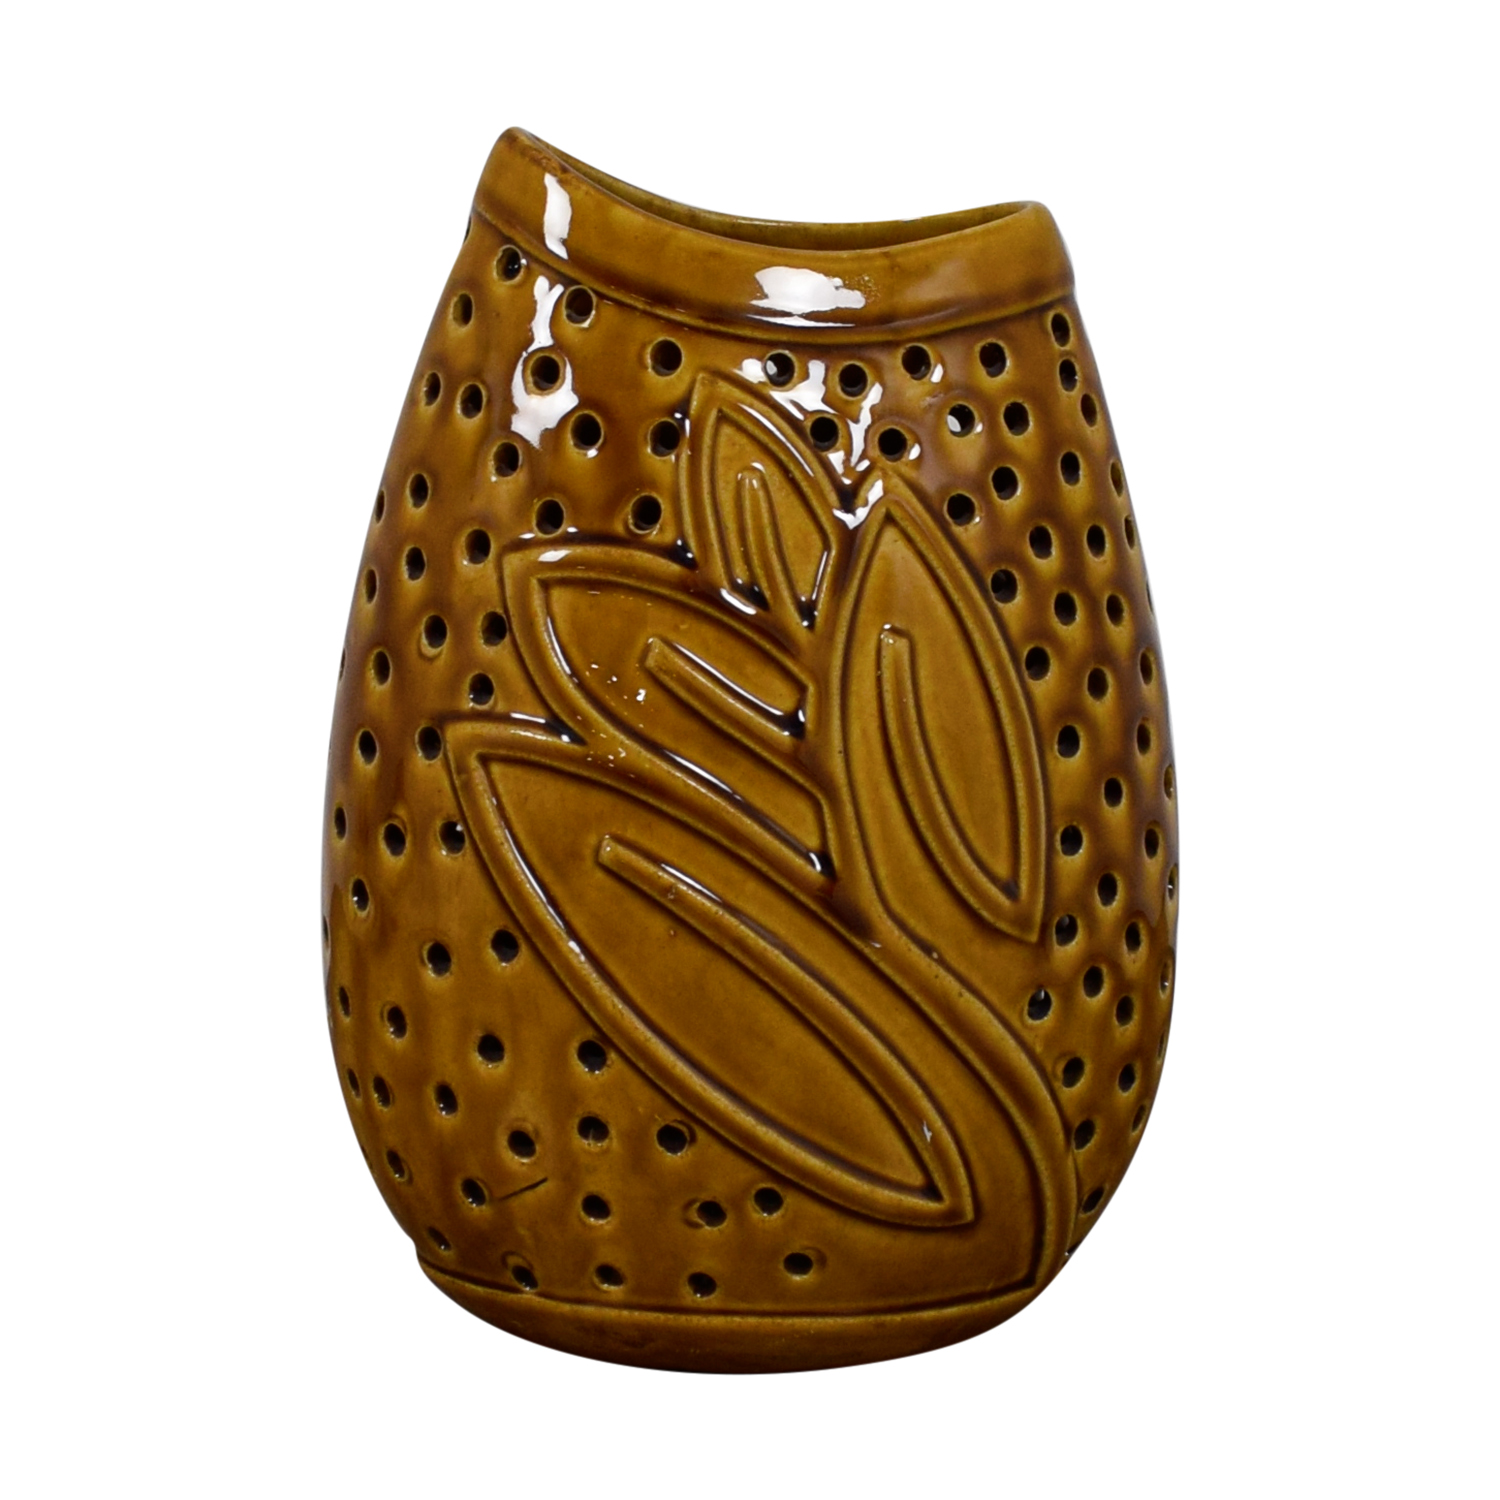 Decorative Golden Ceramic Vase / Decorative Accents